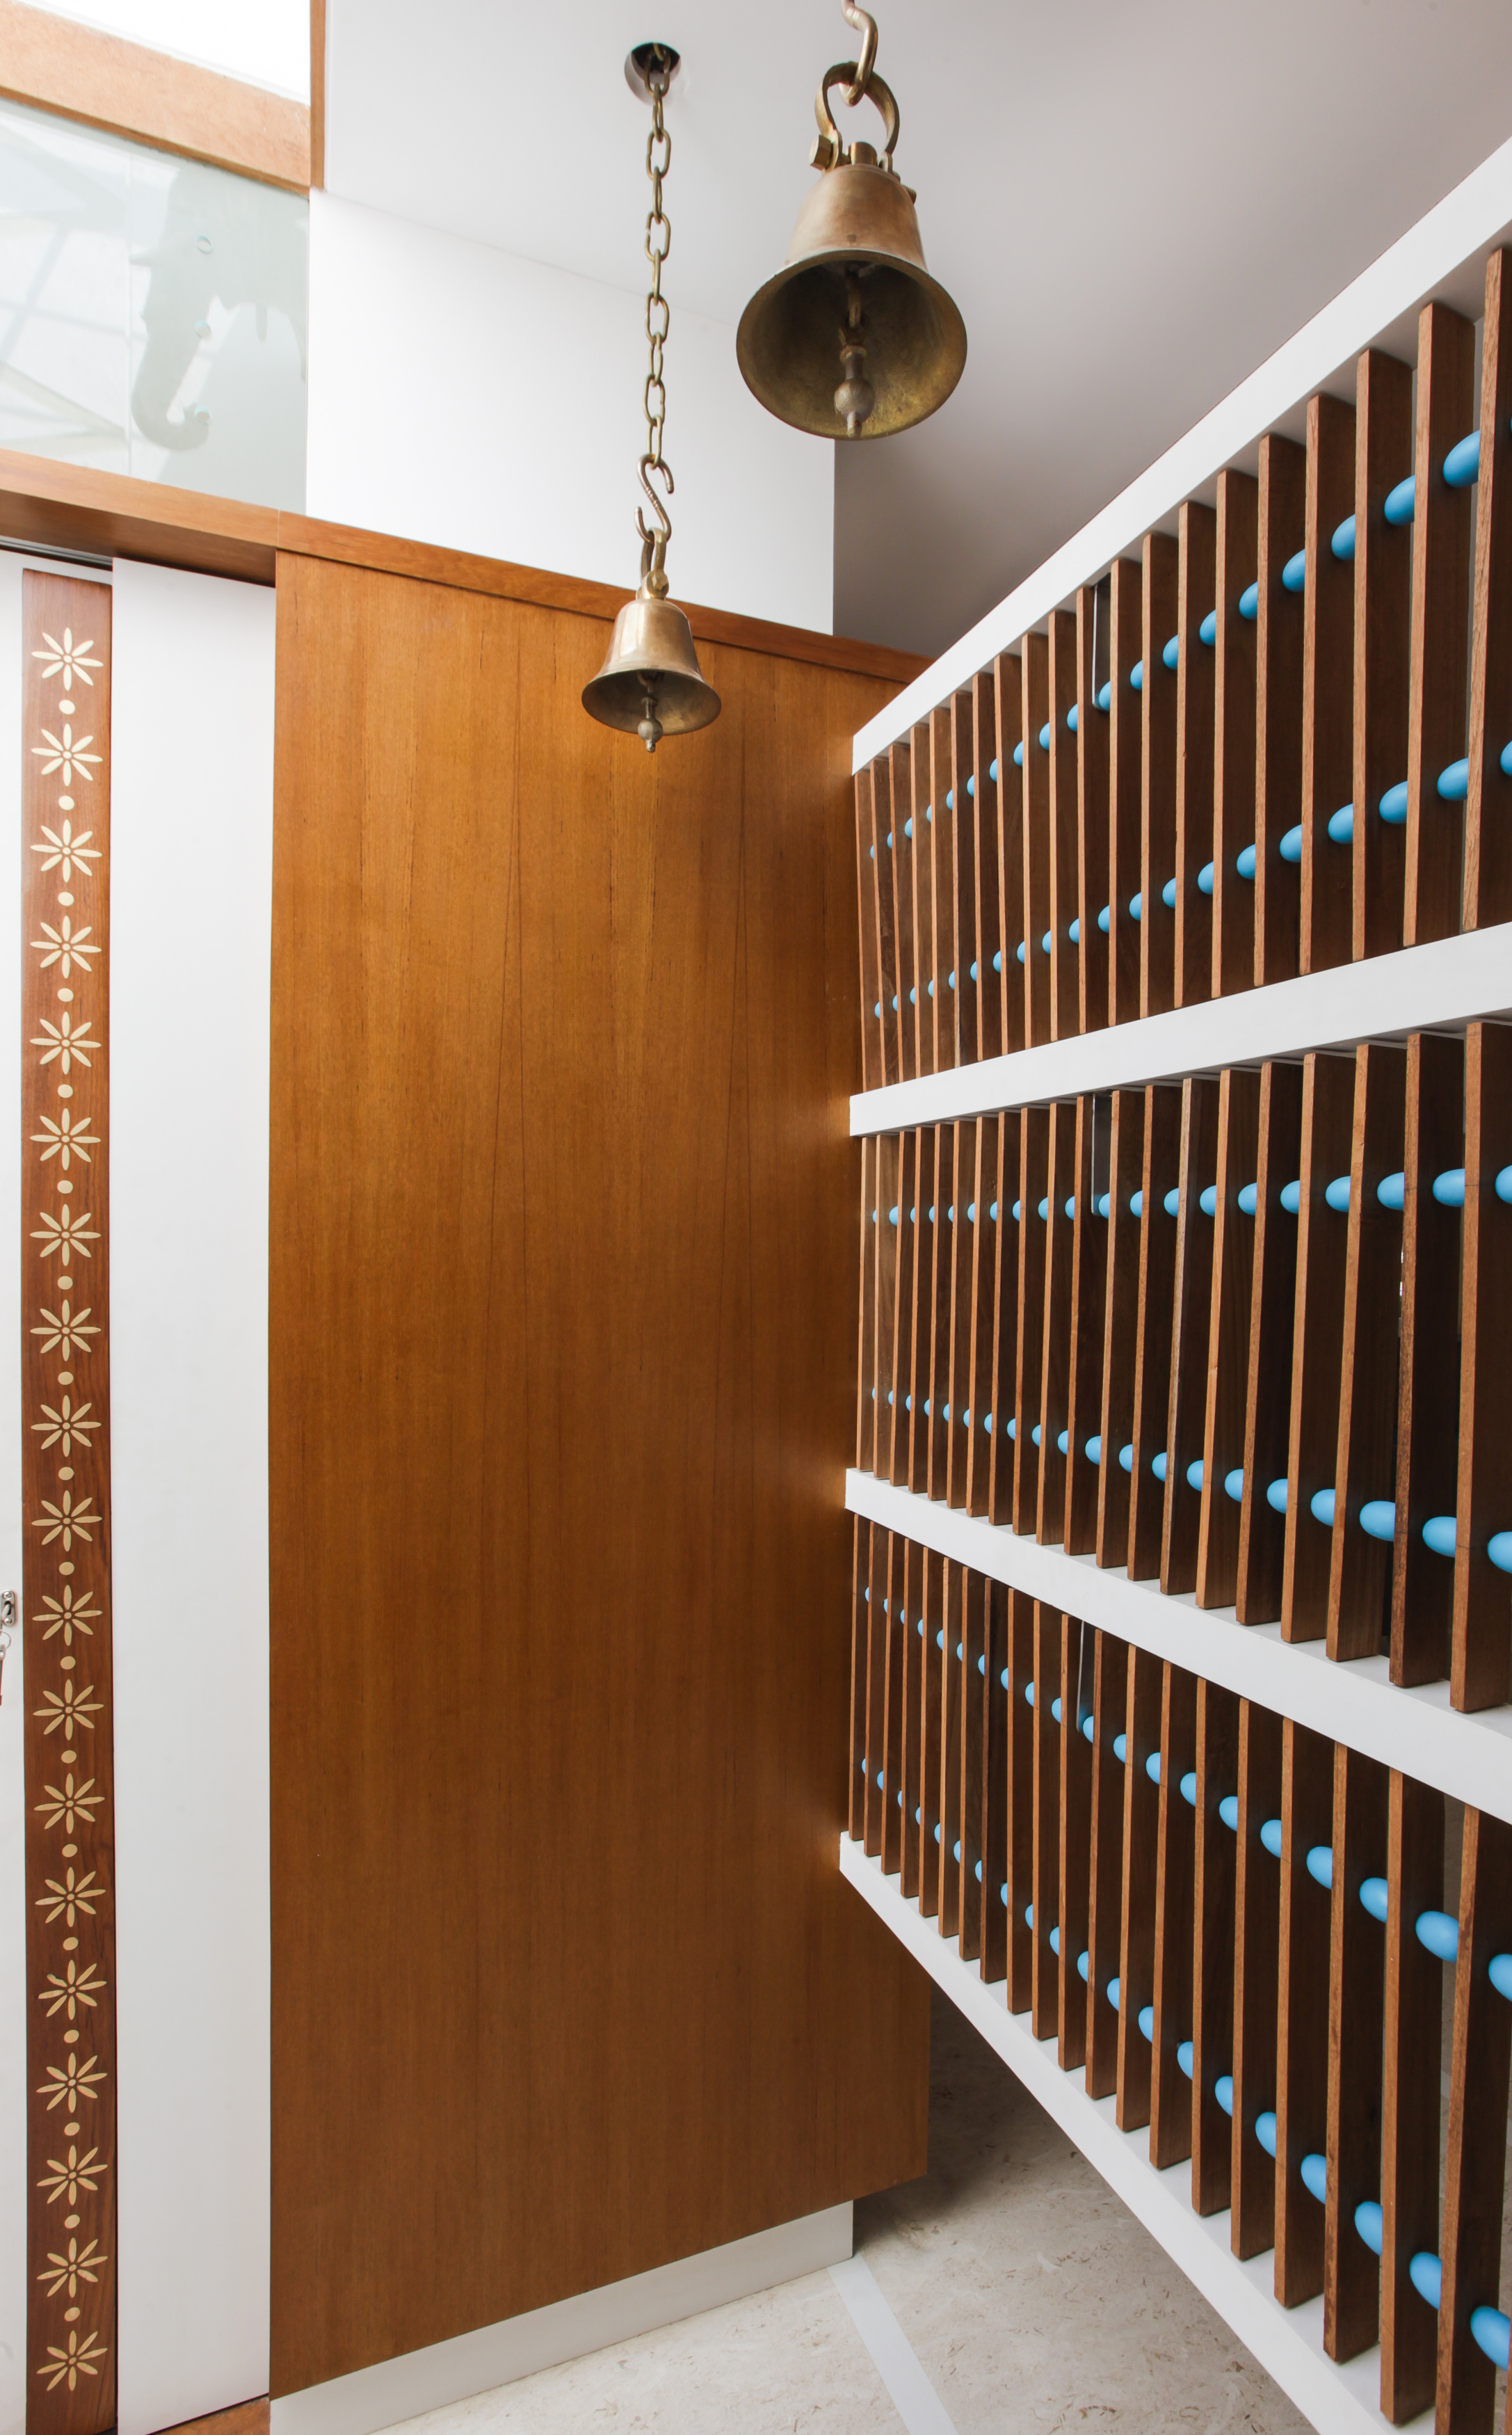 Detailing of the pooja room space